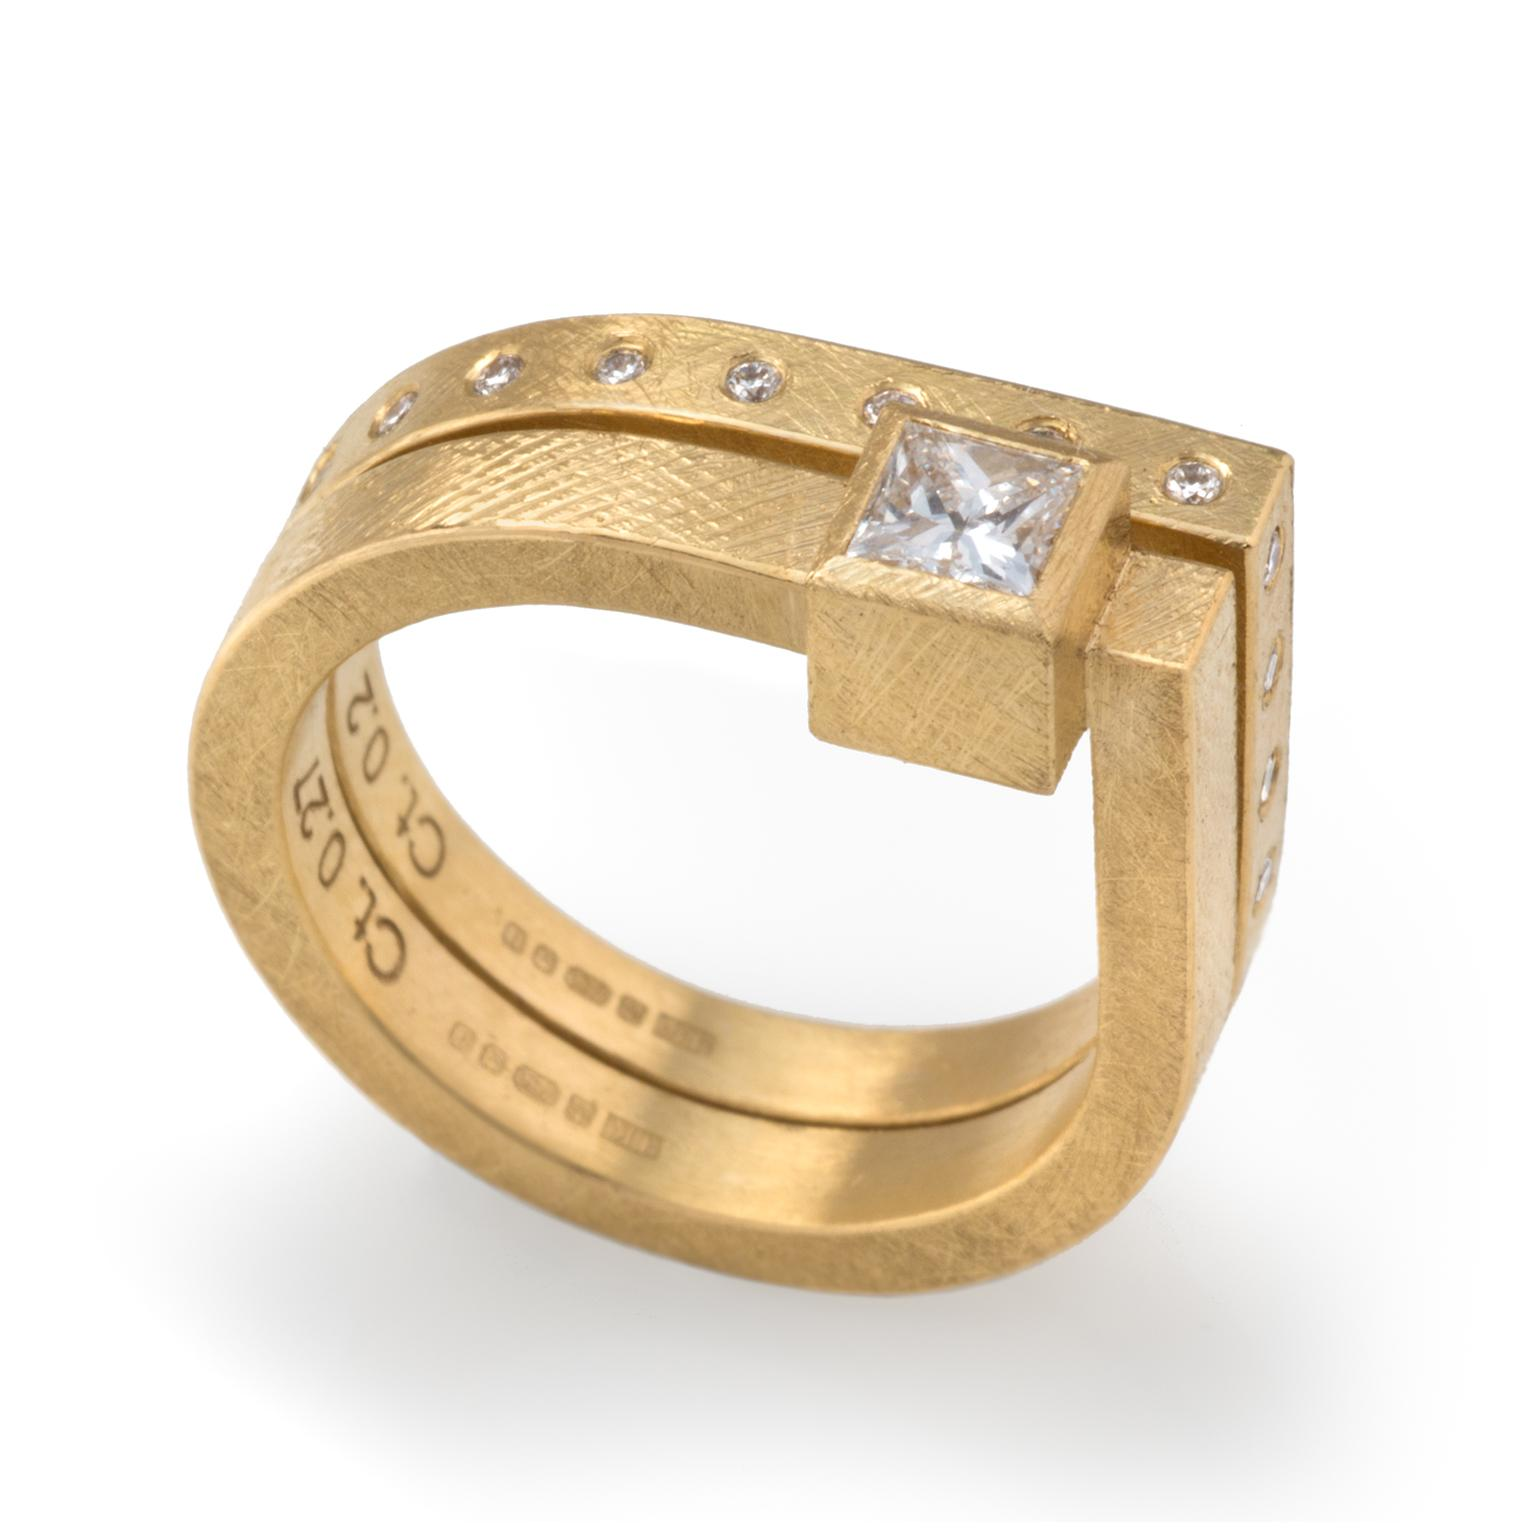 Josef Koppmann diamond ring